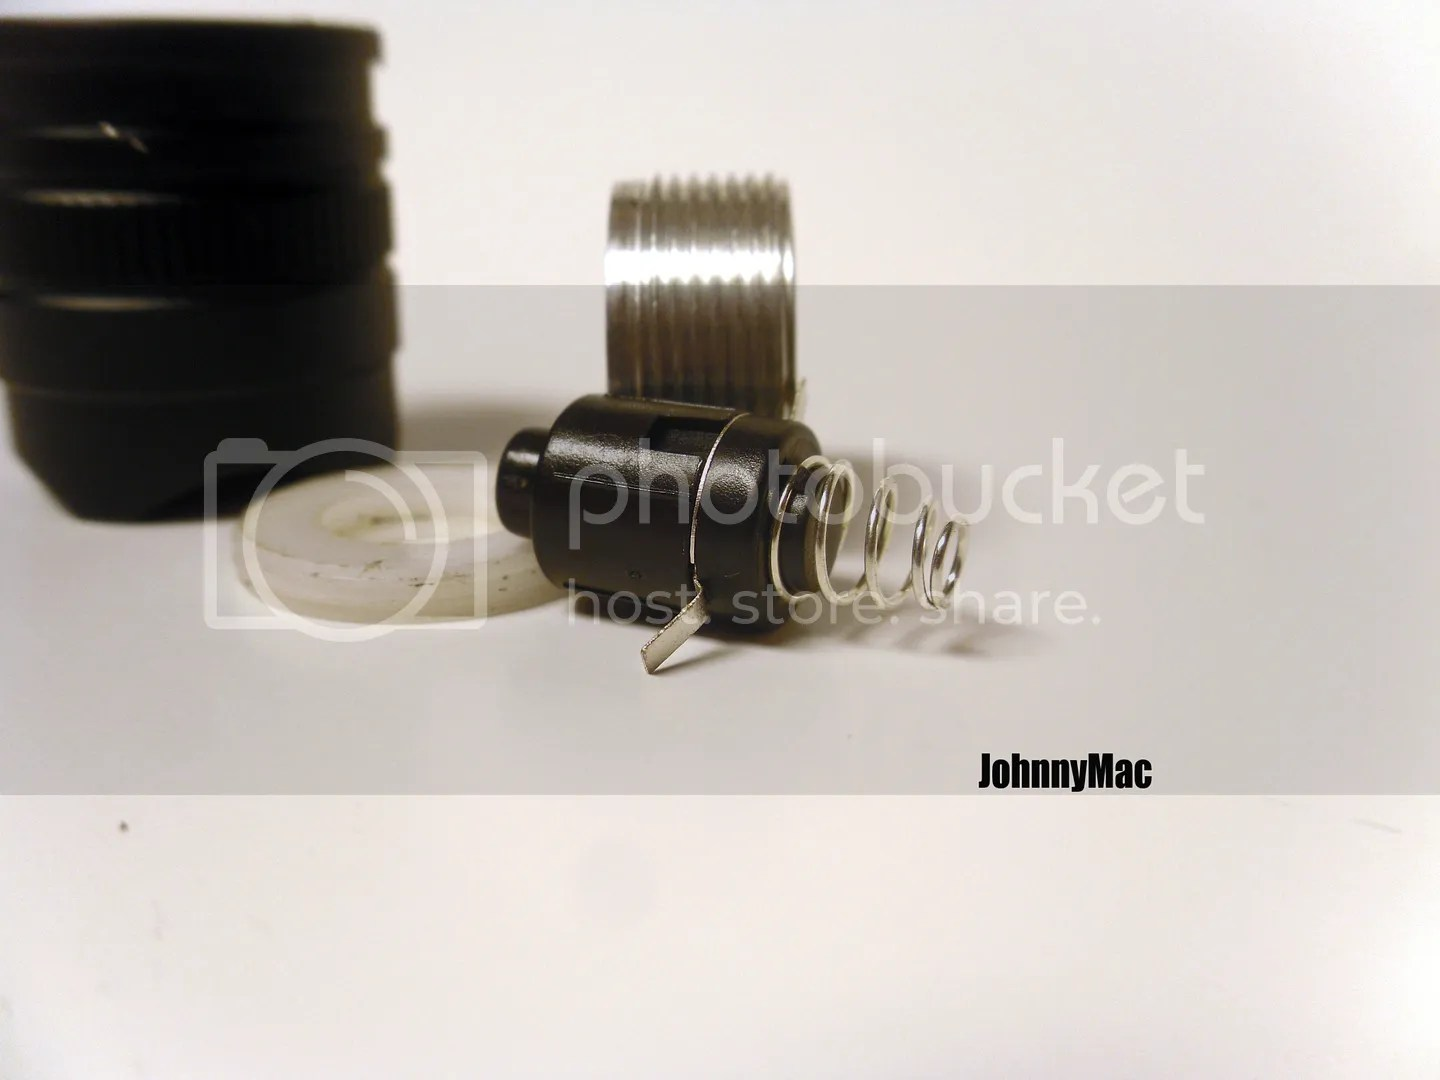 9mm forward-clicky switch photo 9c7140cb-6949-4c8f-8f37-8419d712b6f4_zps3b71cc08.jpg